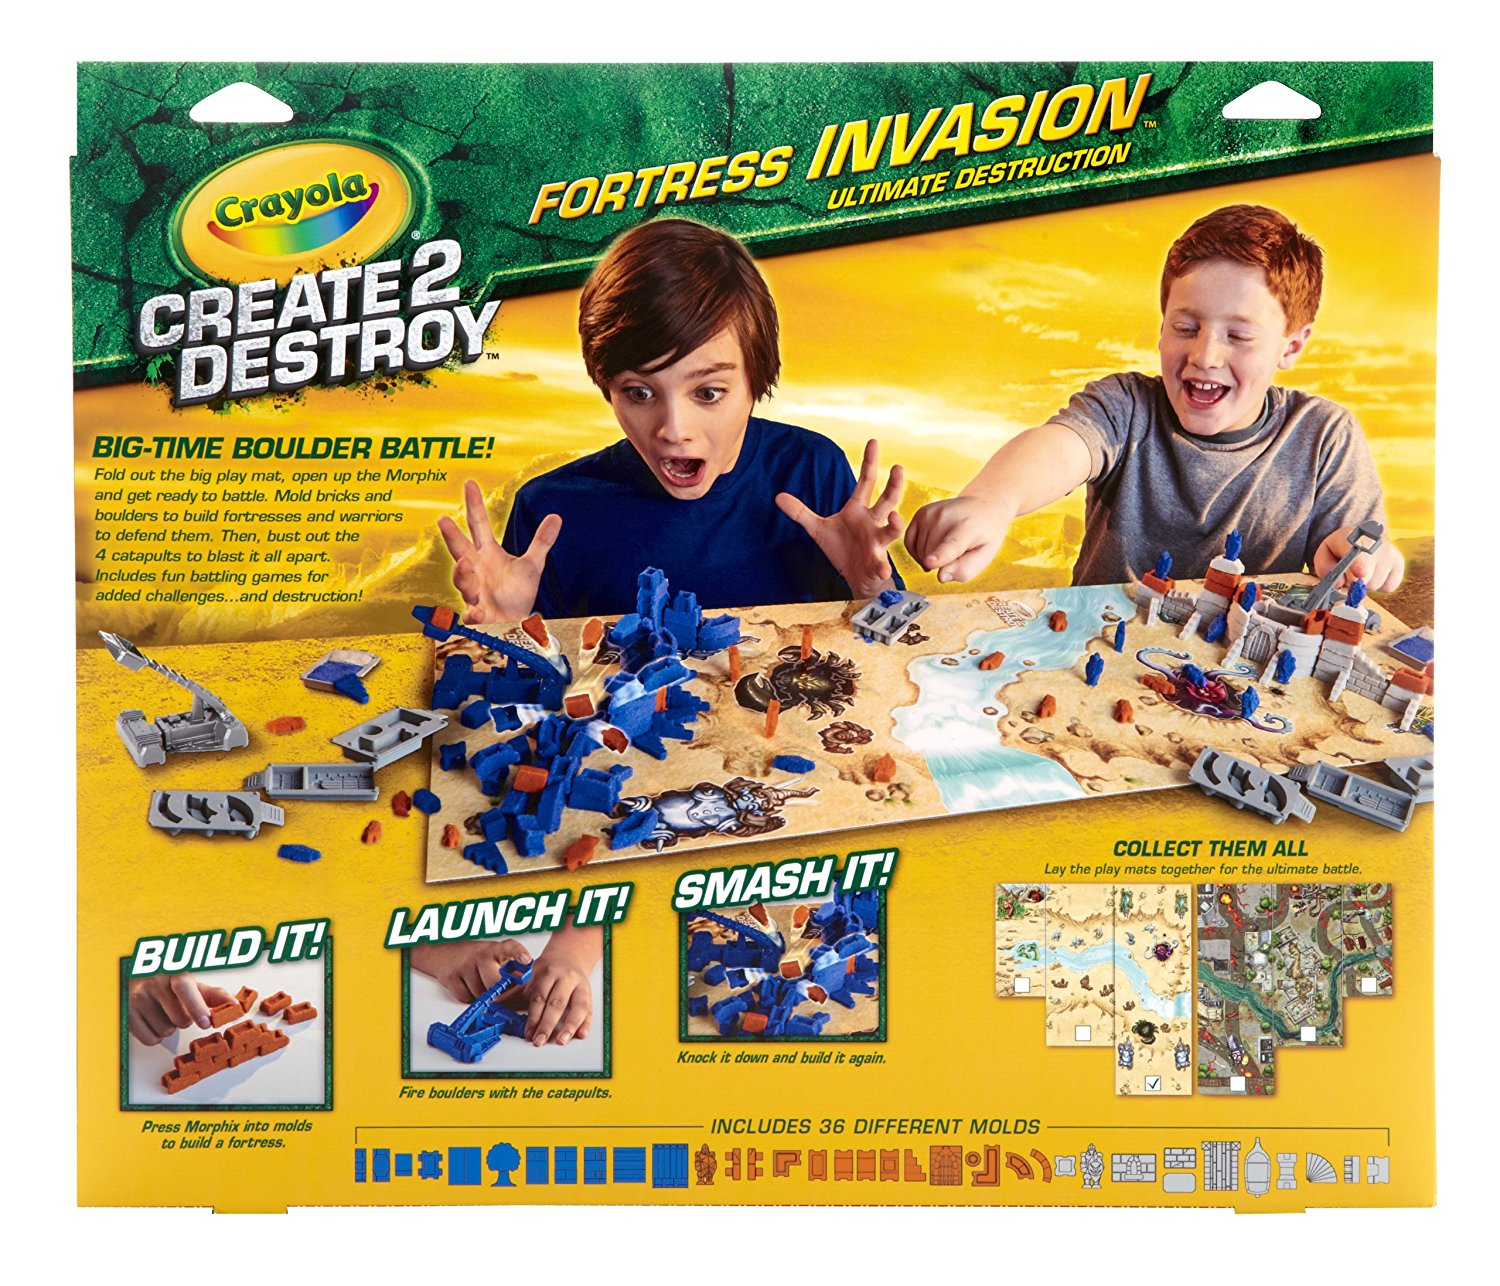 Crayola Create 2 Destroy Kit Dino Destruction or Fortress